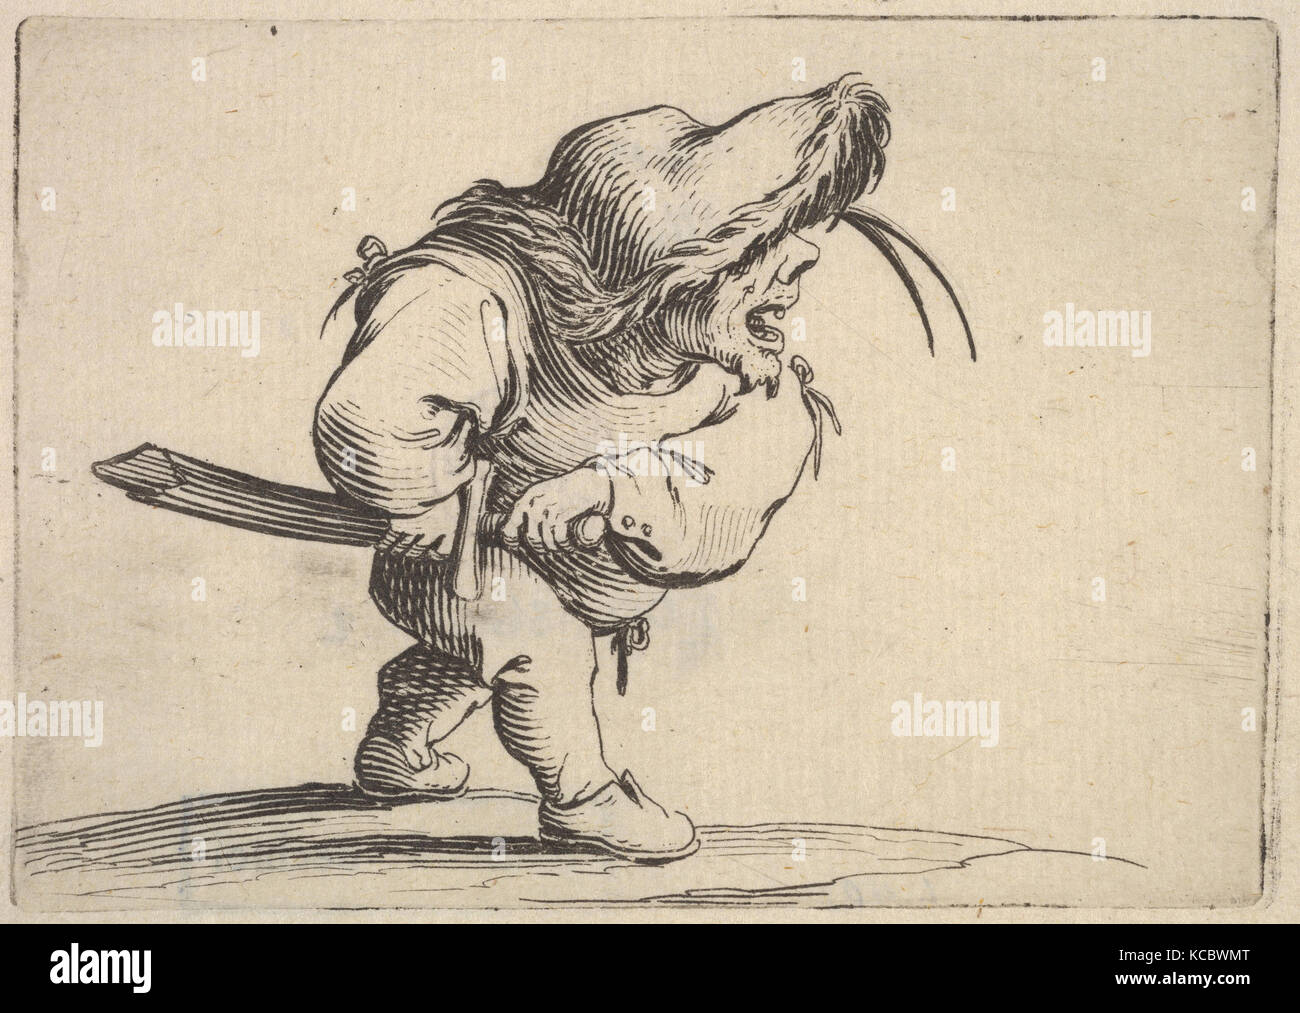 Small male figure stopping to draw his sword, in profile view with open mouth and left foot positioned forward - Stock Image